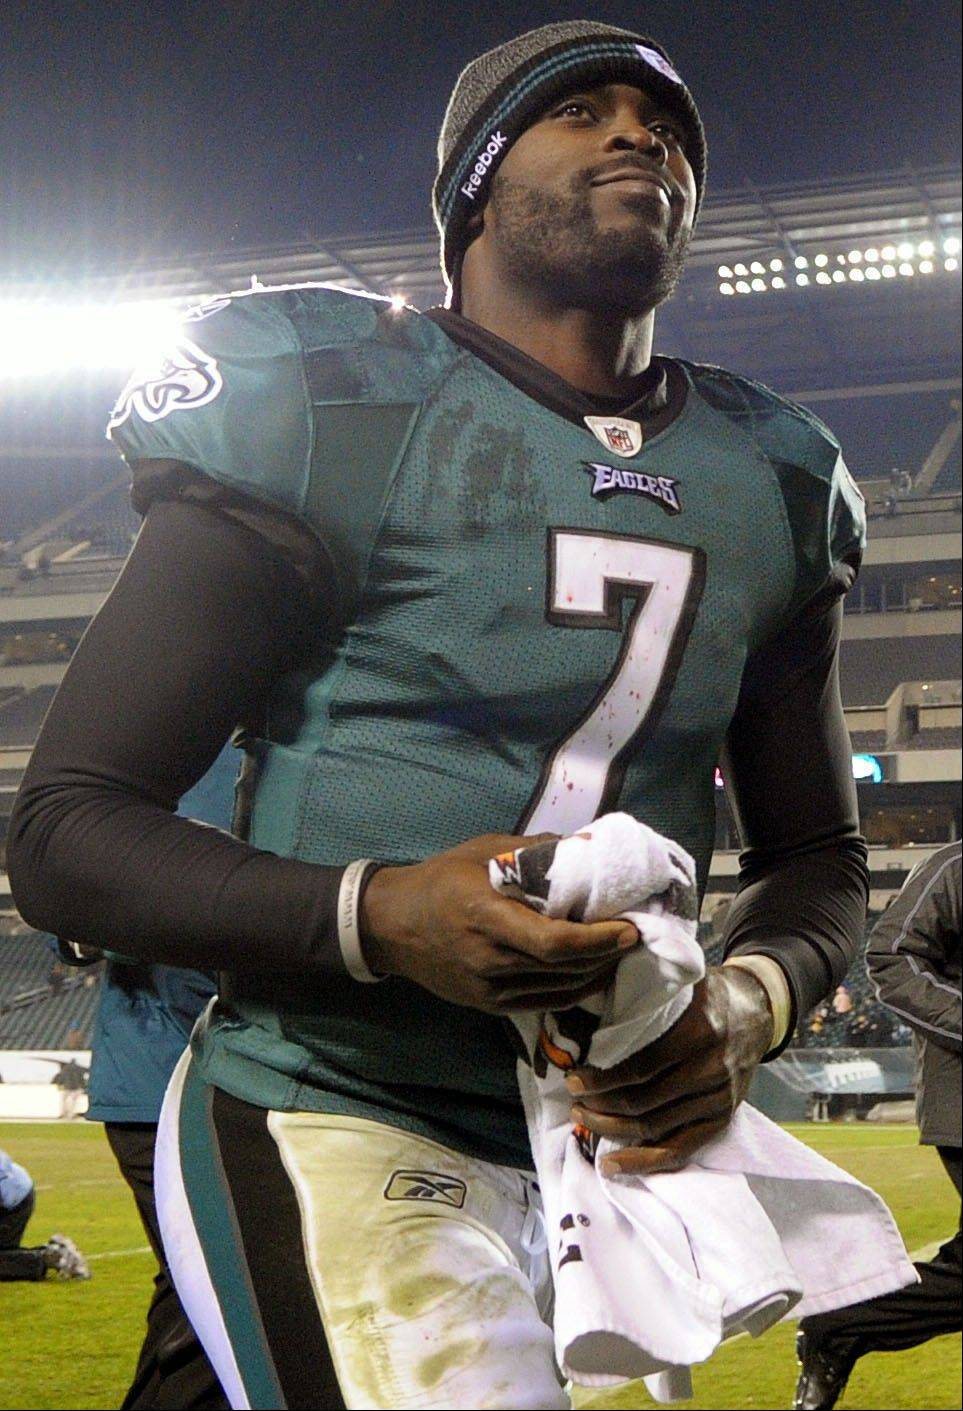 Philadelphia Eagles quarterback Michael Vick runs off the field following a win against the Dallas Cowboys, Sunday, Oct. 30, 2011, in Philadelphia.